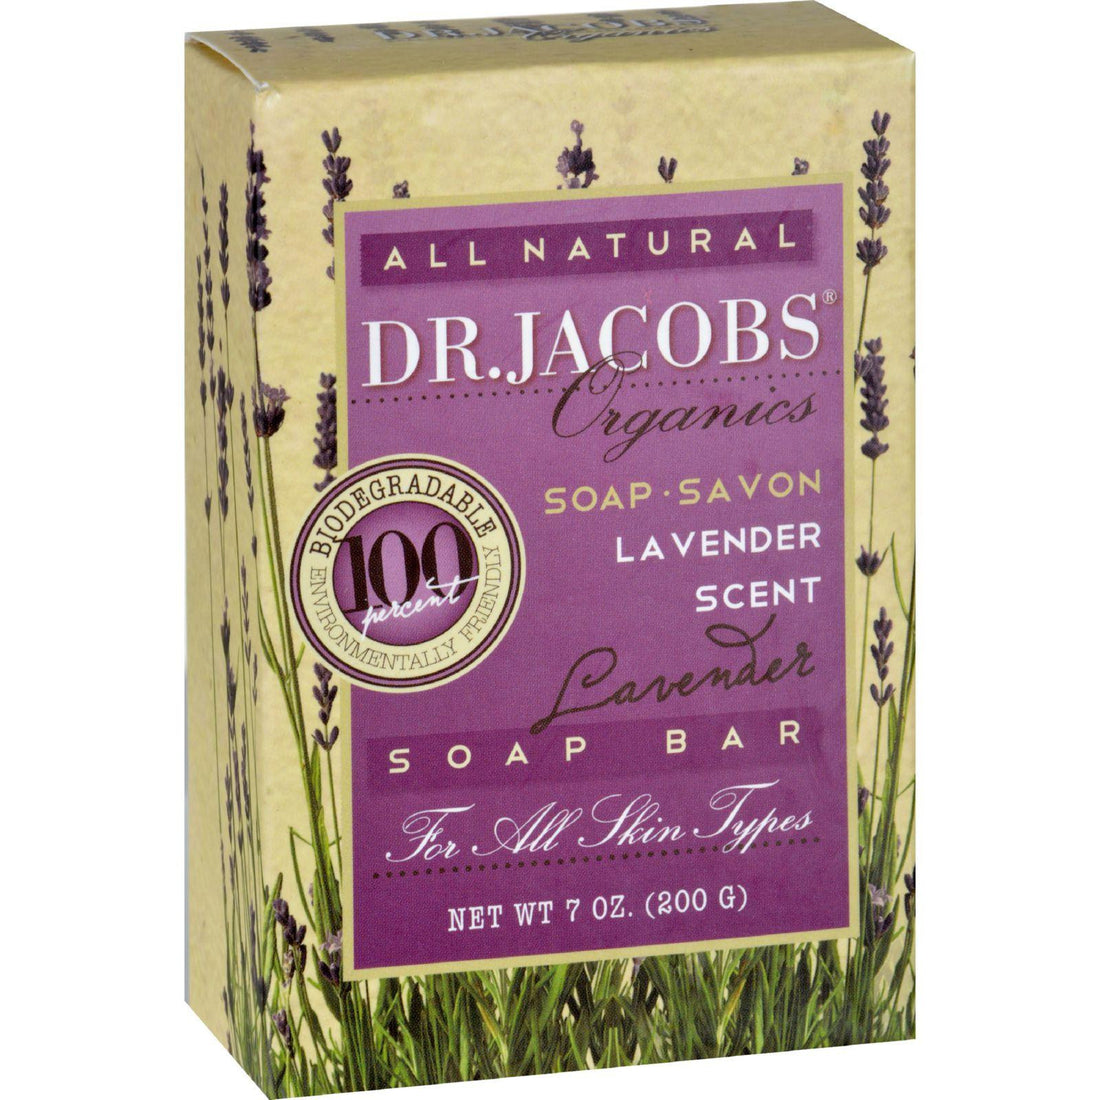 Mother Mantis: Dr. Jacobs Naturals Bar Soap - Castile - Lavender - 6.5 Oz Dr. Jacobs Naturals